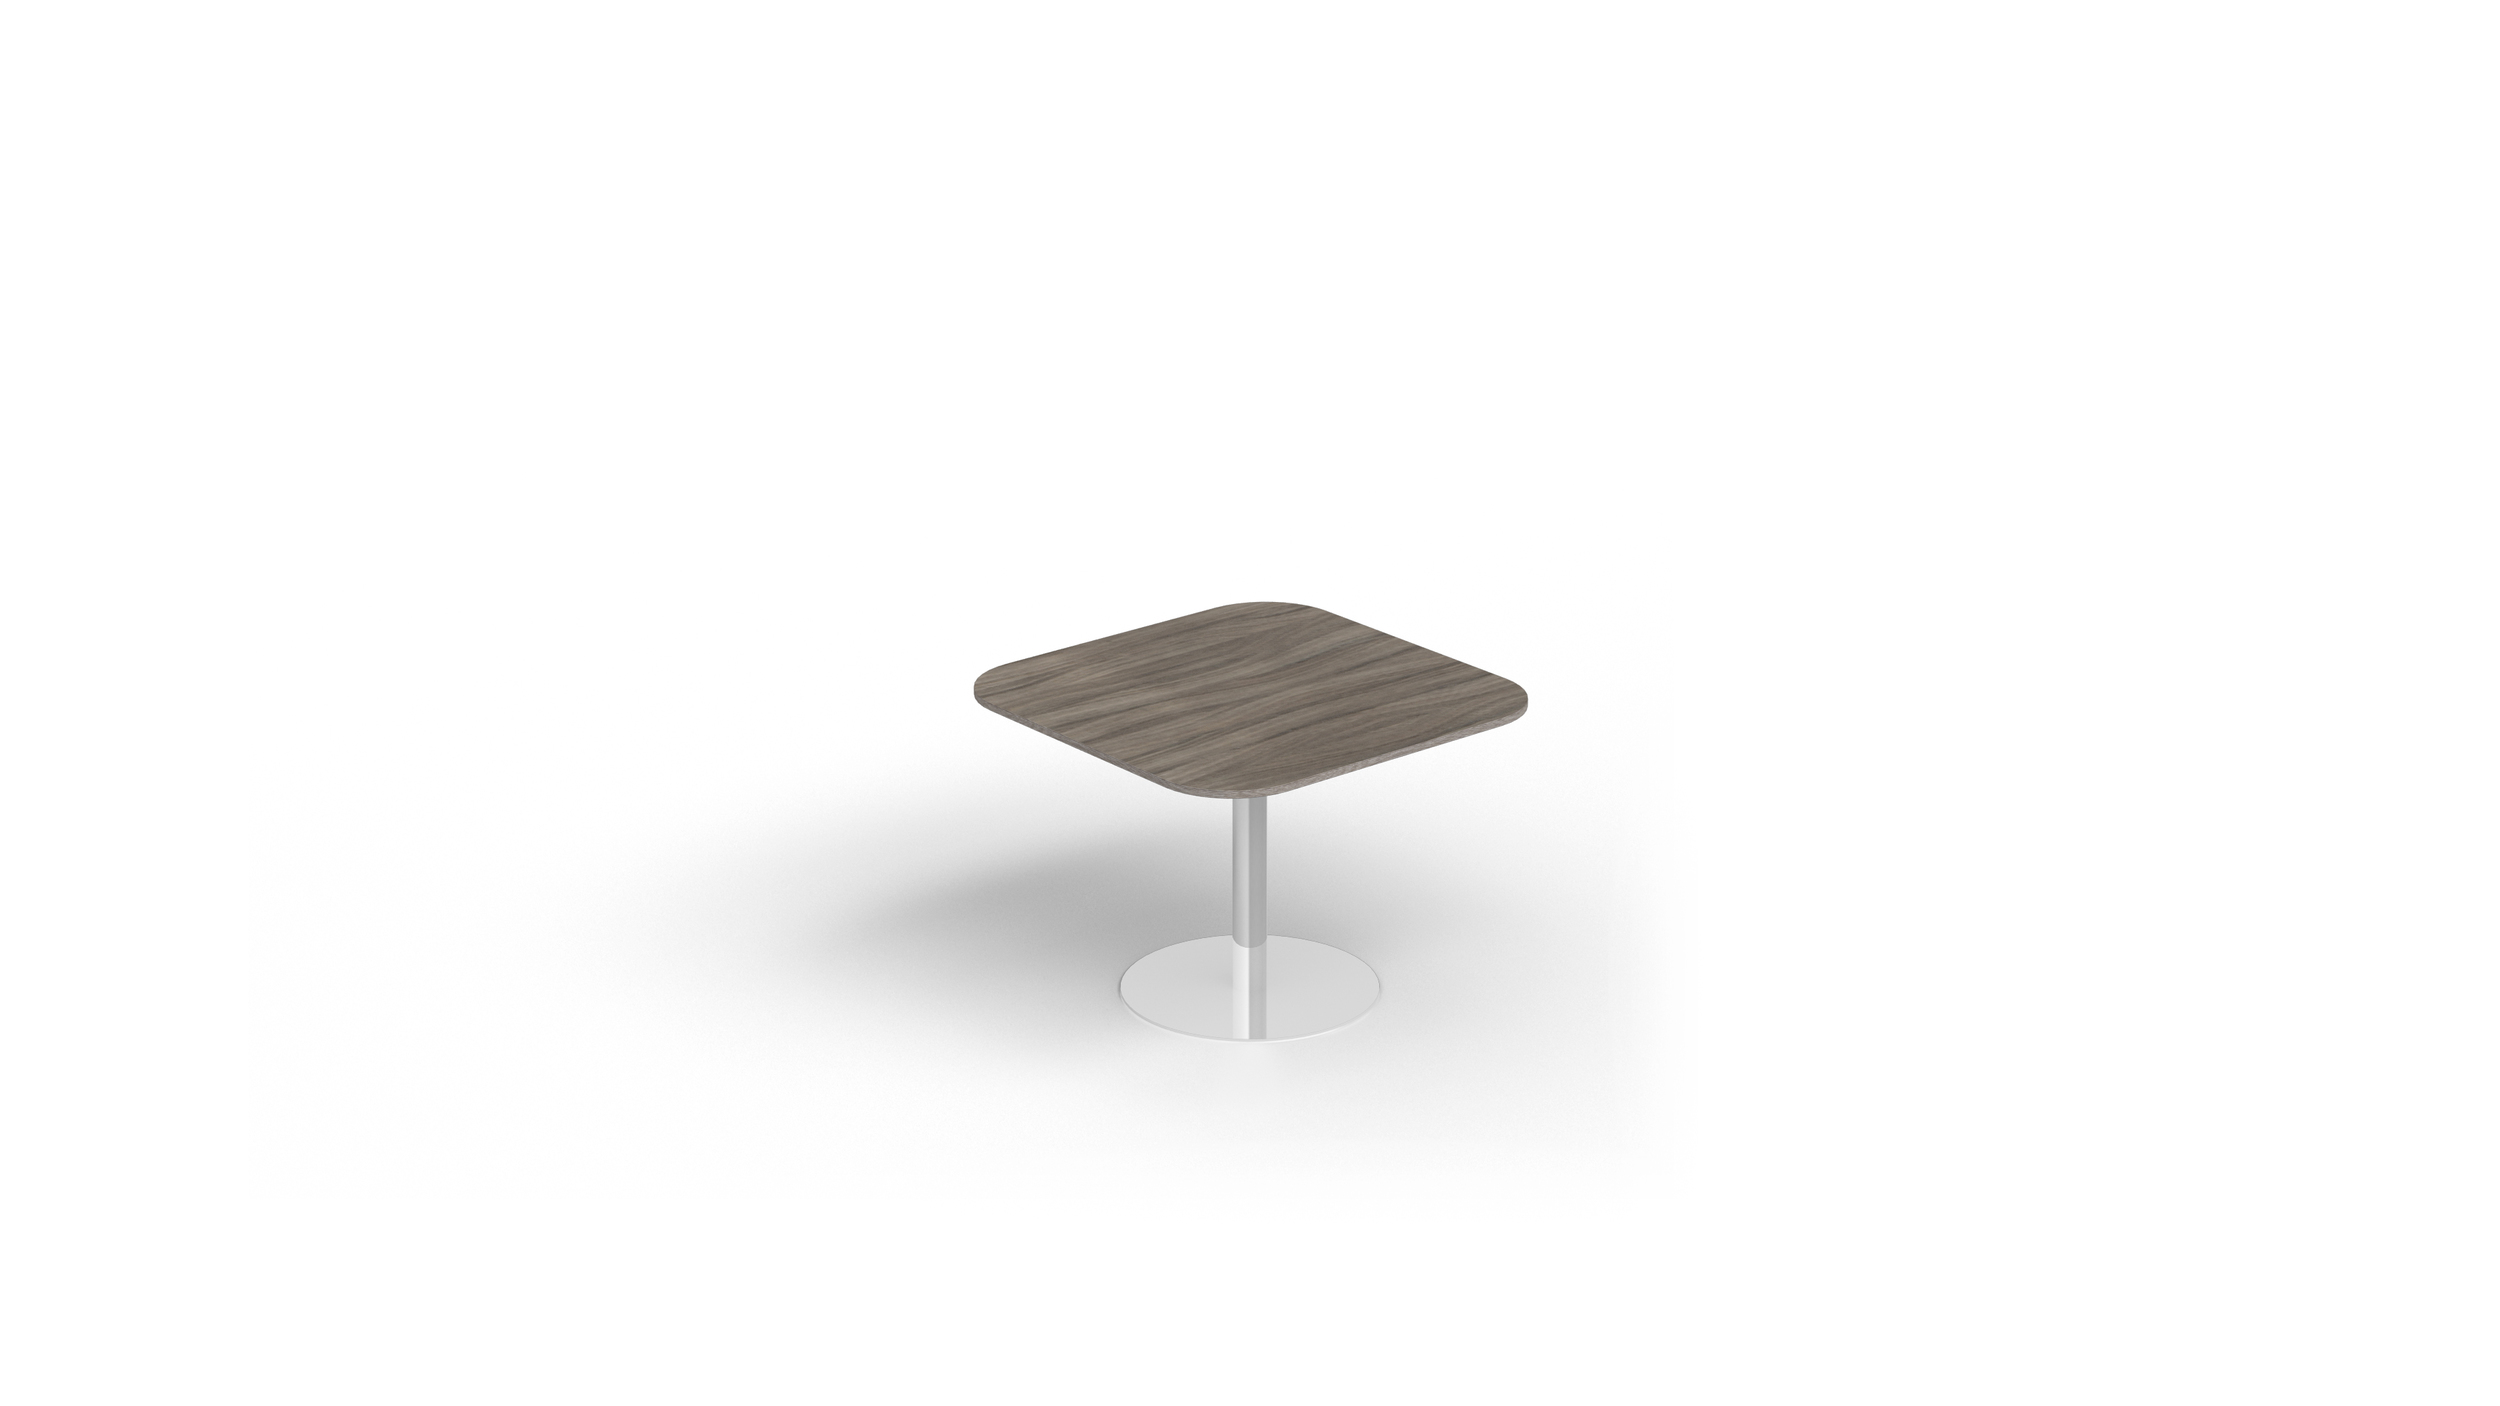 0152 COLUMN TABLE square 100